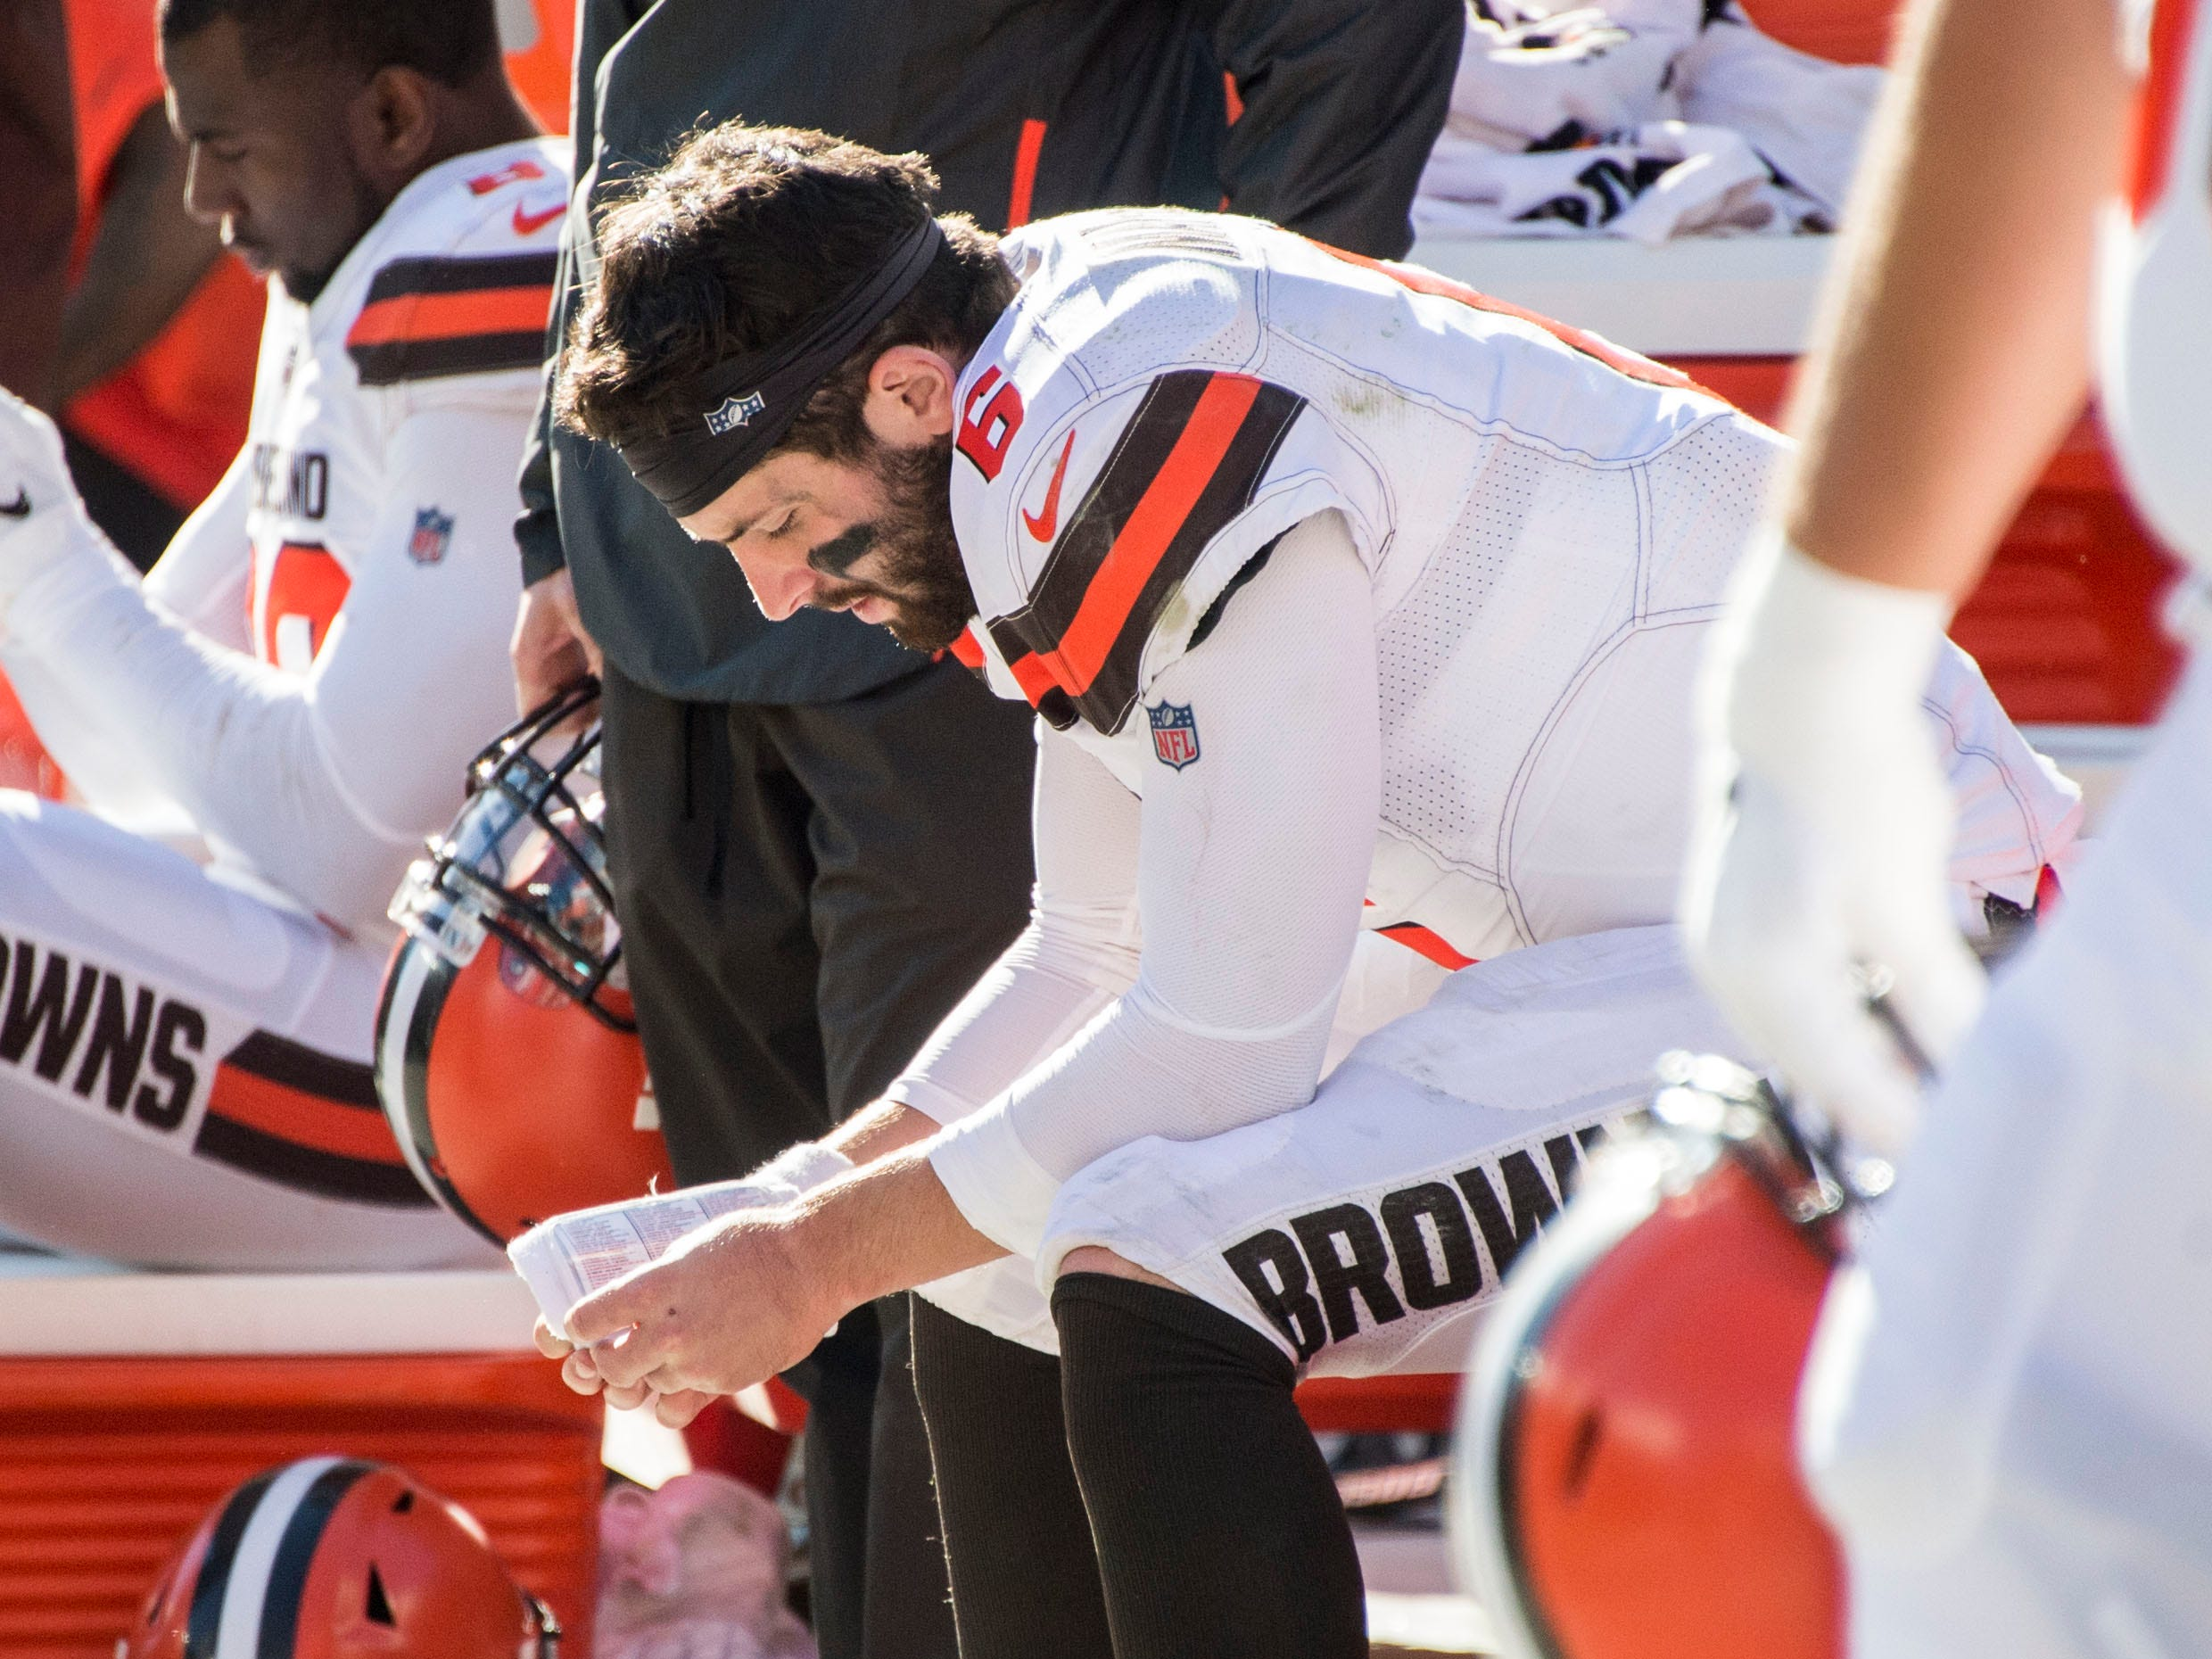 Cleveland Browns quarterback Baker Mayfield sits on the bench late in the fourth quarter against the Los Angeles Chargers at FirstEnergy Stadium. The Browns lost to the Chargers, 38-14.